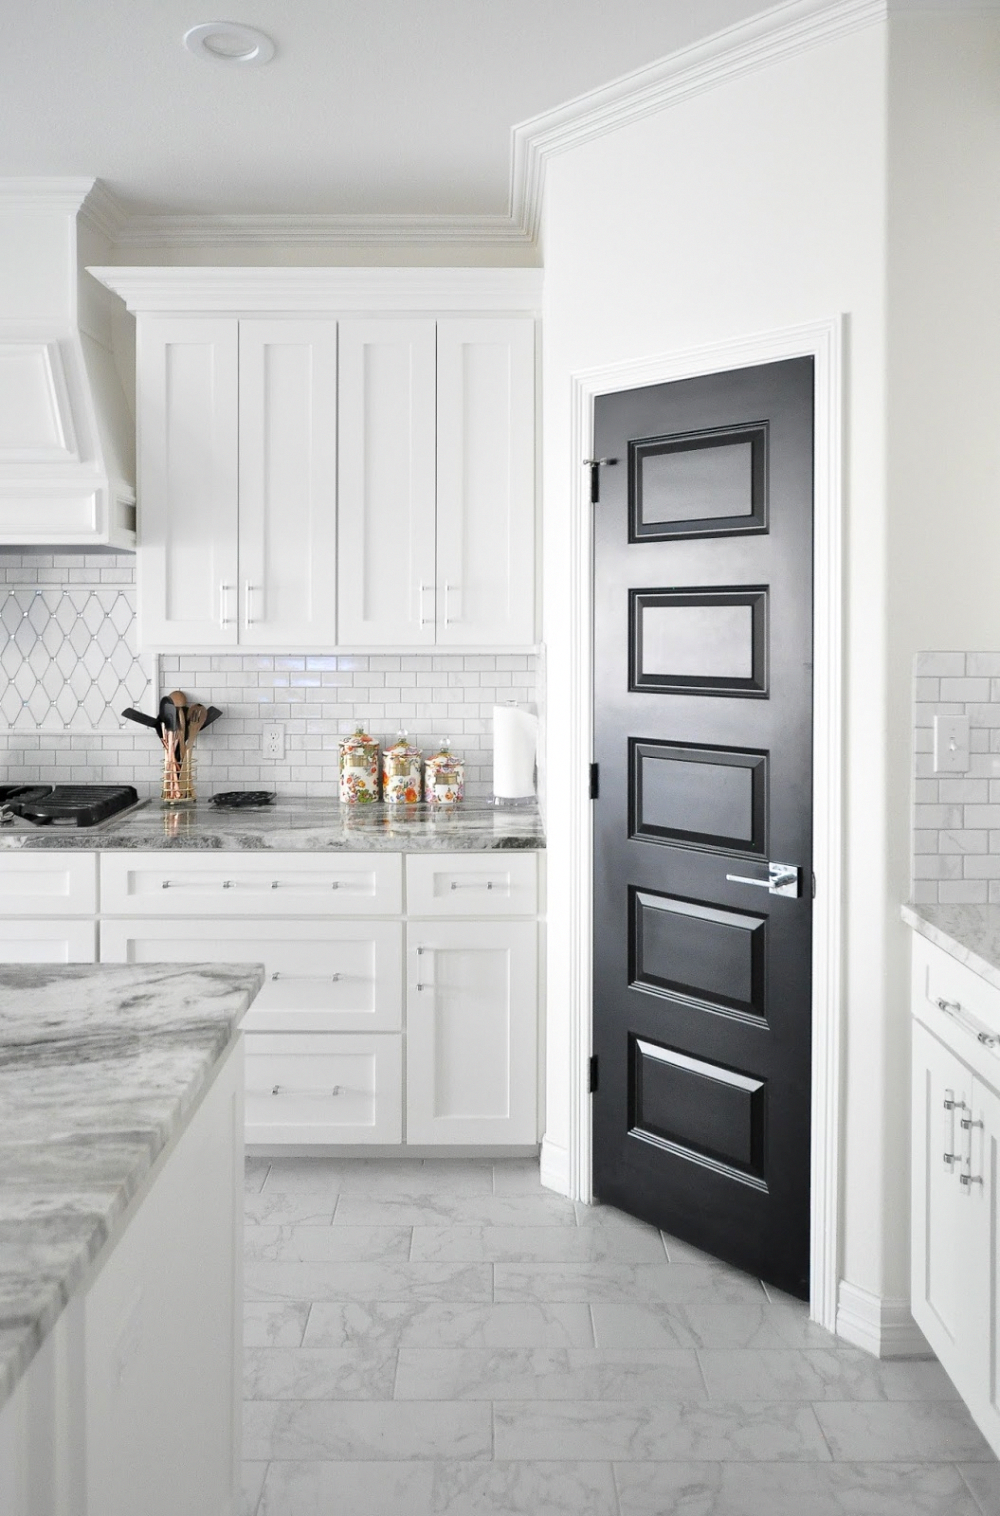 A Black Pantry Door In An All White Shaker Cabinet Kitchen With Marble Floors And Backsp Kitchen Remodel Inspiration Kitchen Remodel Small White Shaker Kitchen